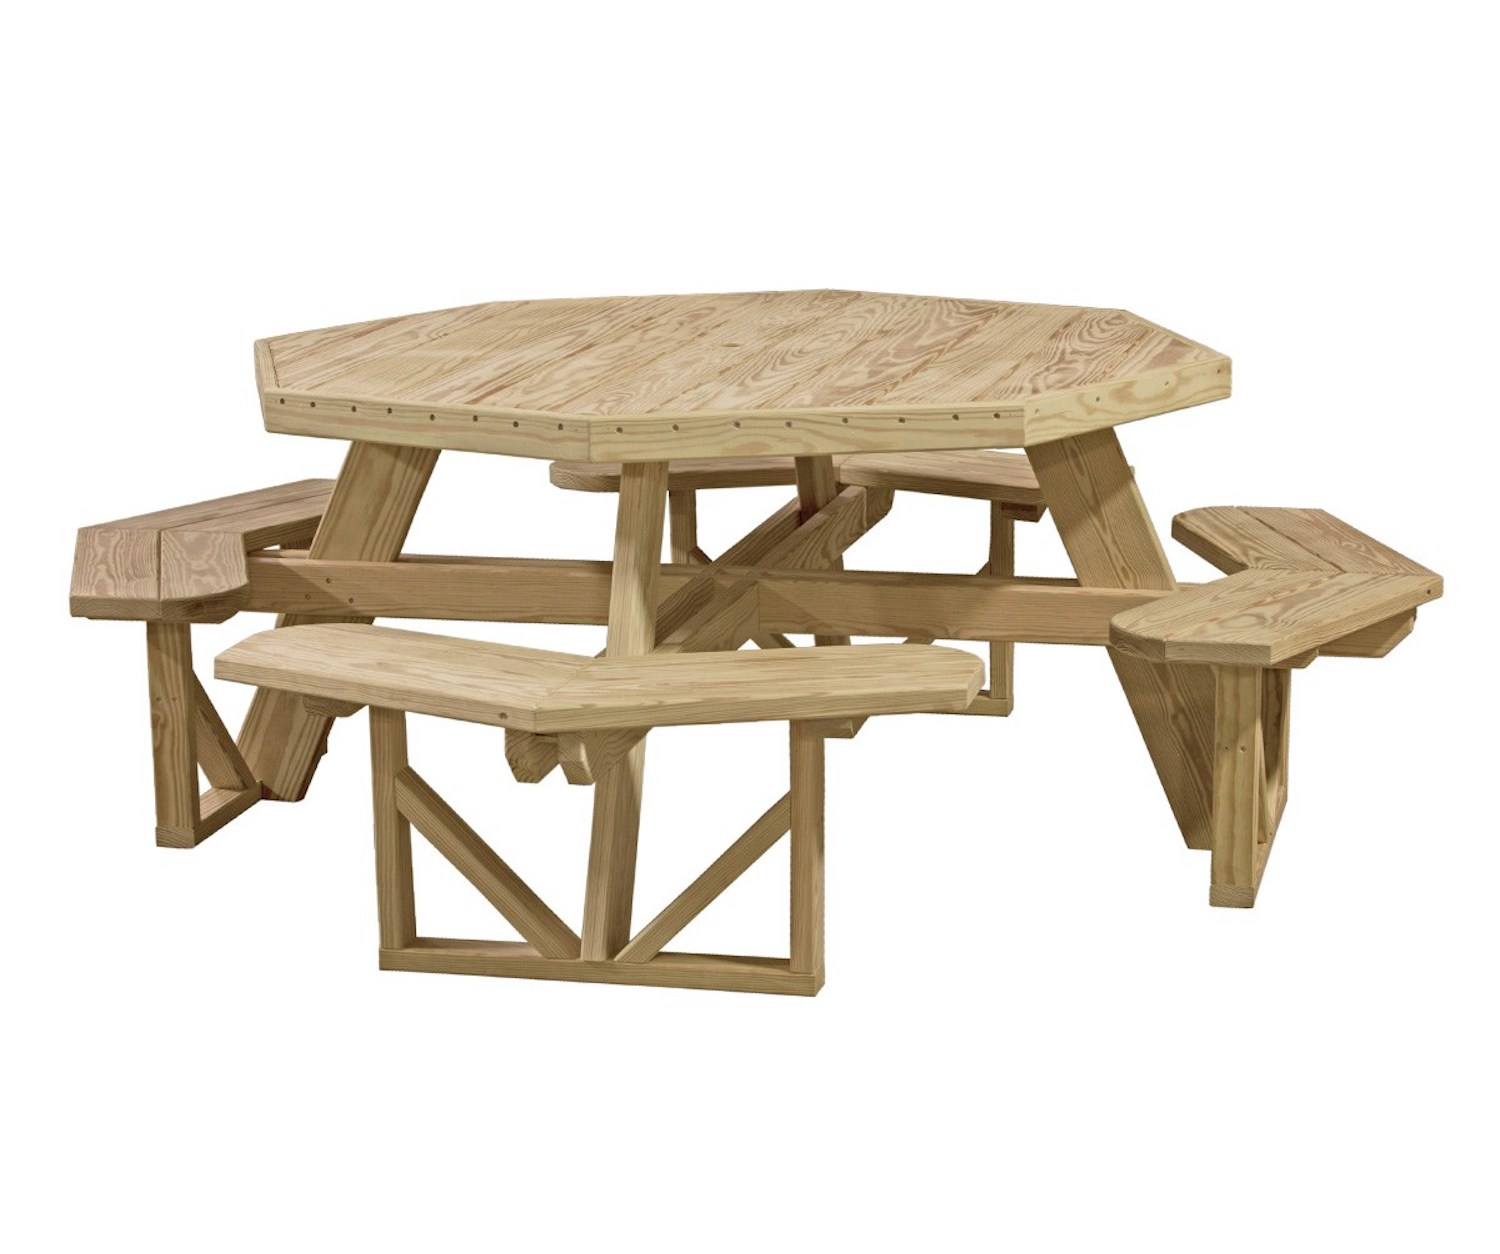 Wooden Lawn Furniture Tables Pittsburgh Swing Sets And Amish Lawn - Wooden picnic table without benches